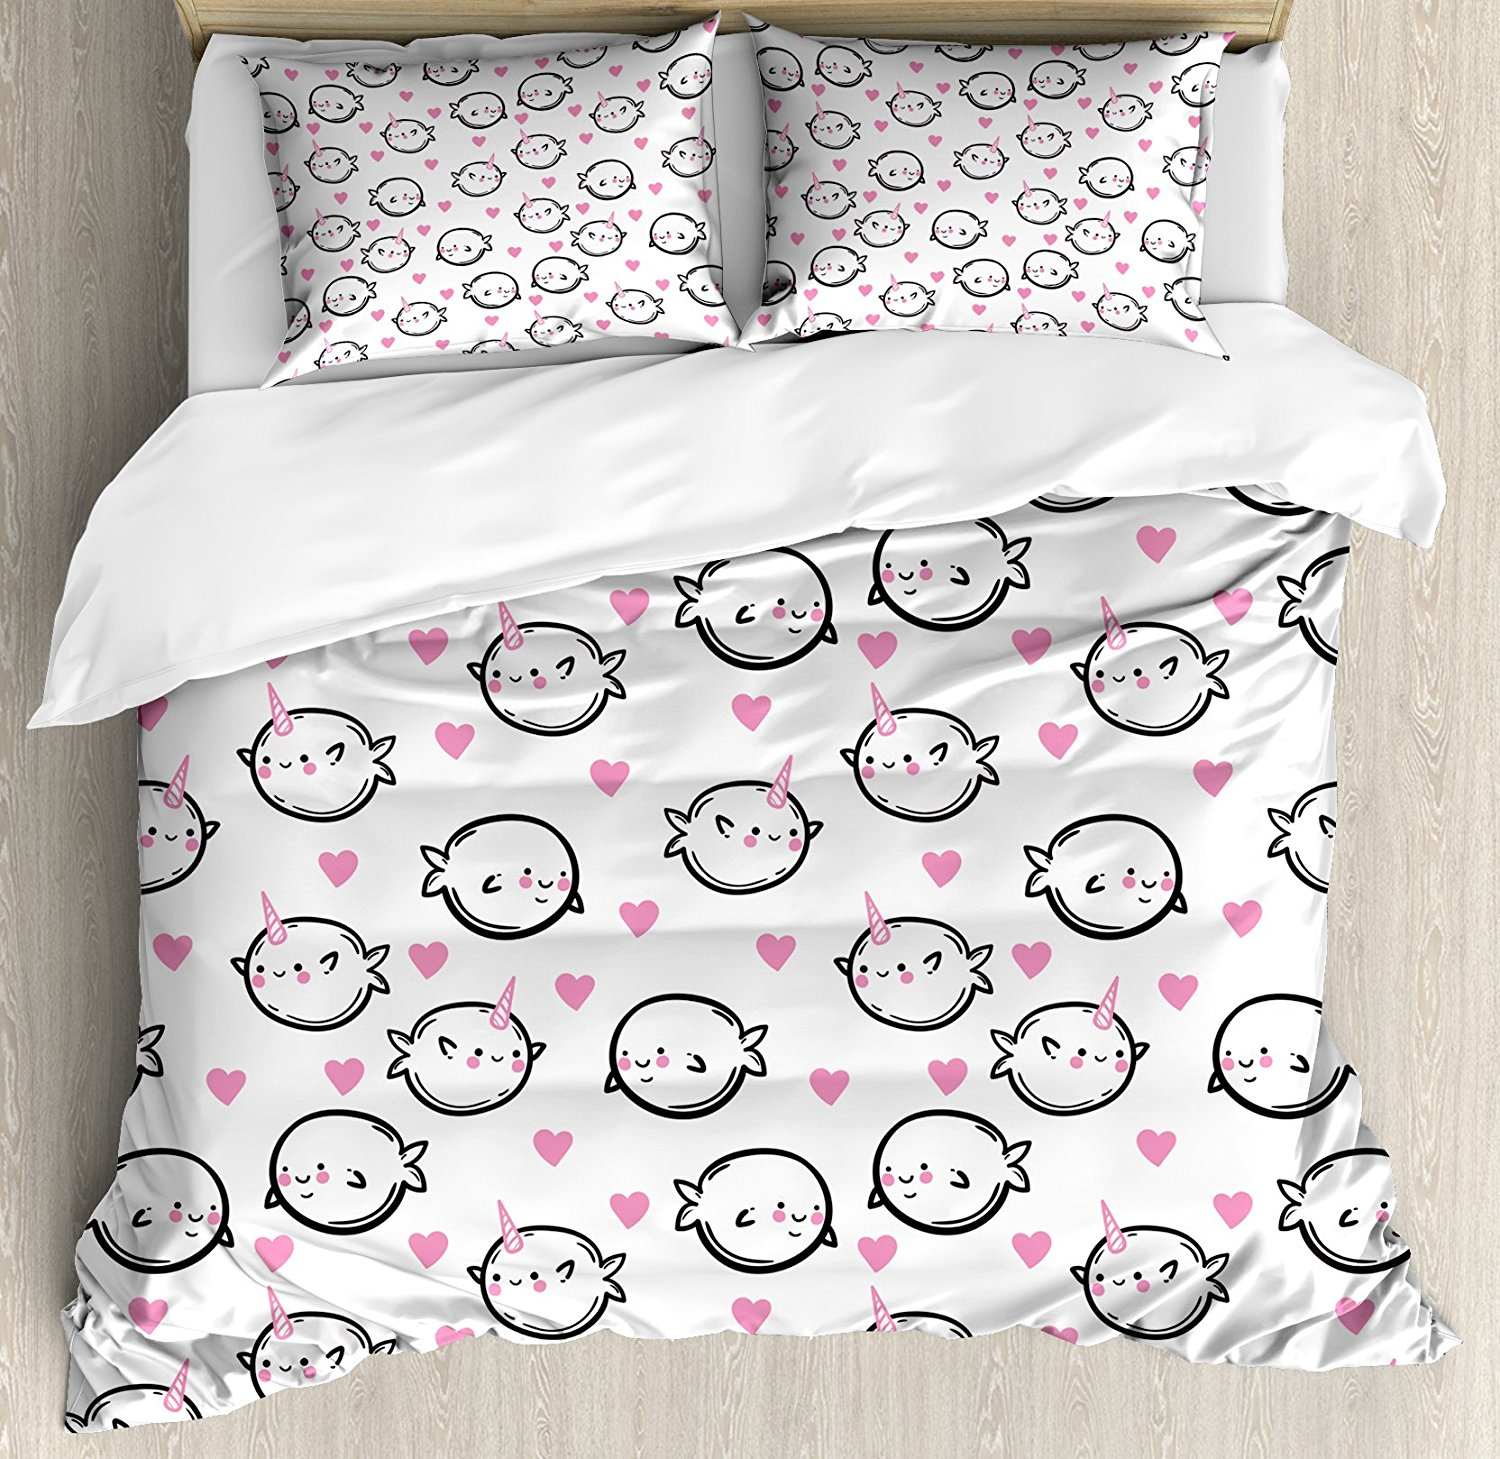 Narwhal Duvet Cover Set Heart Background Doodle Style Whales Sweet Ocean Mammals Childrens Cartoon Decor Bedding Set White